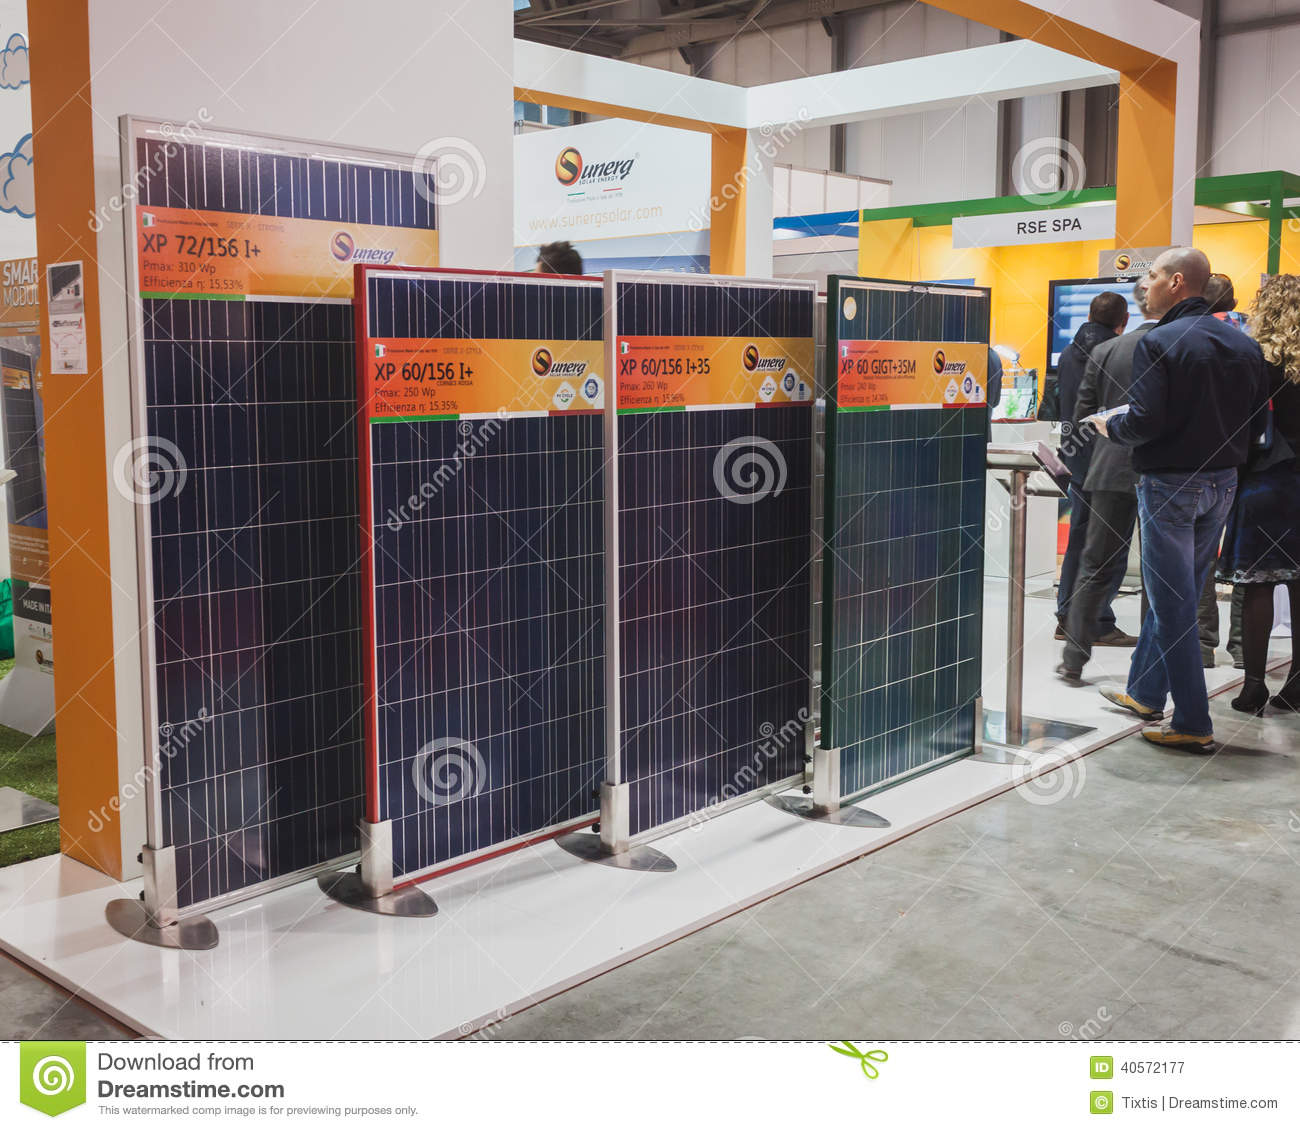 Exhibition Display Panels : Solar panels on display at solarexpo in milan italy